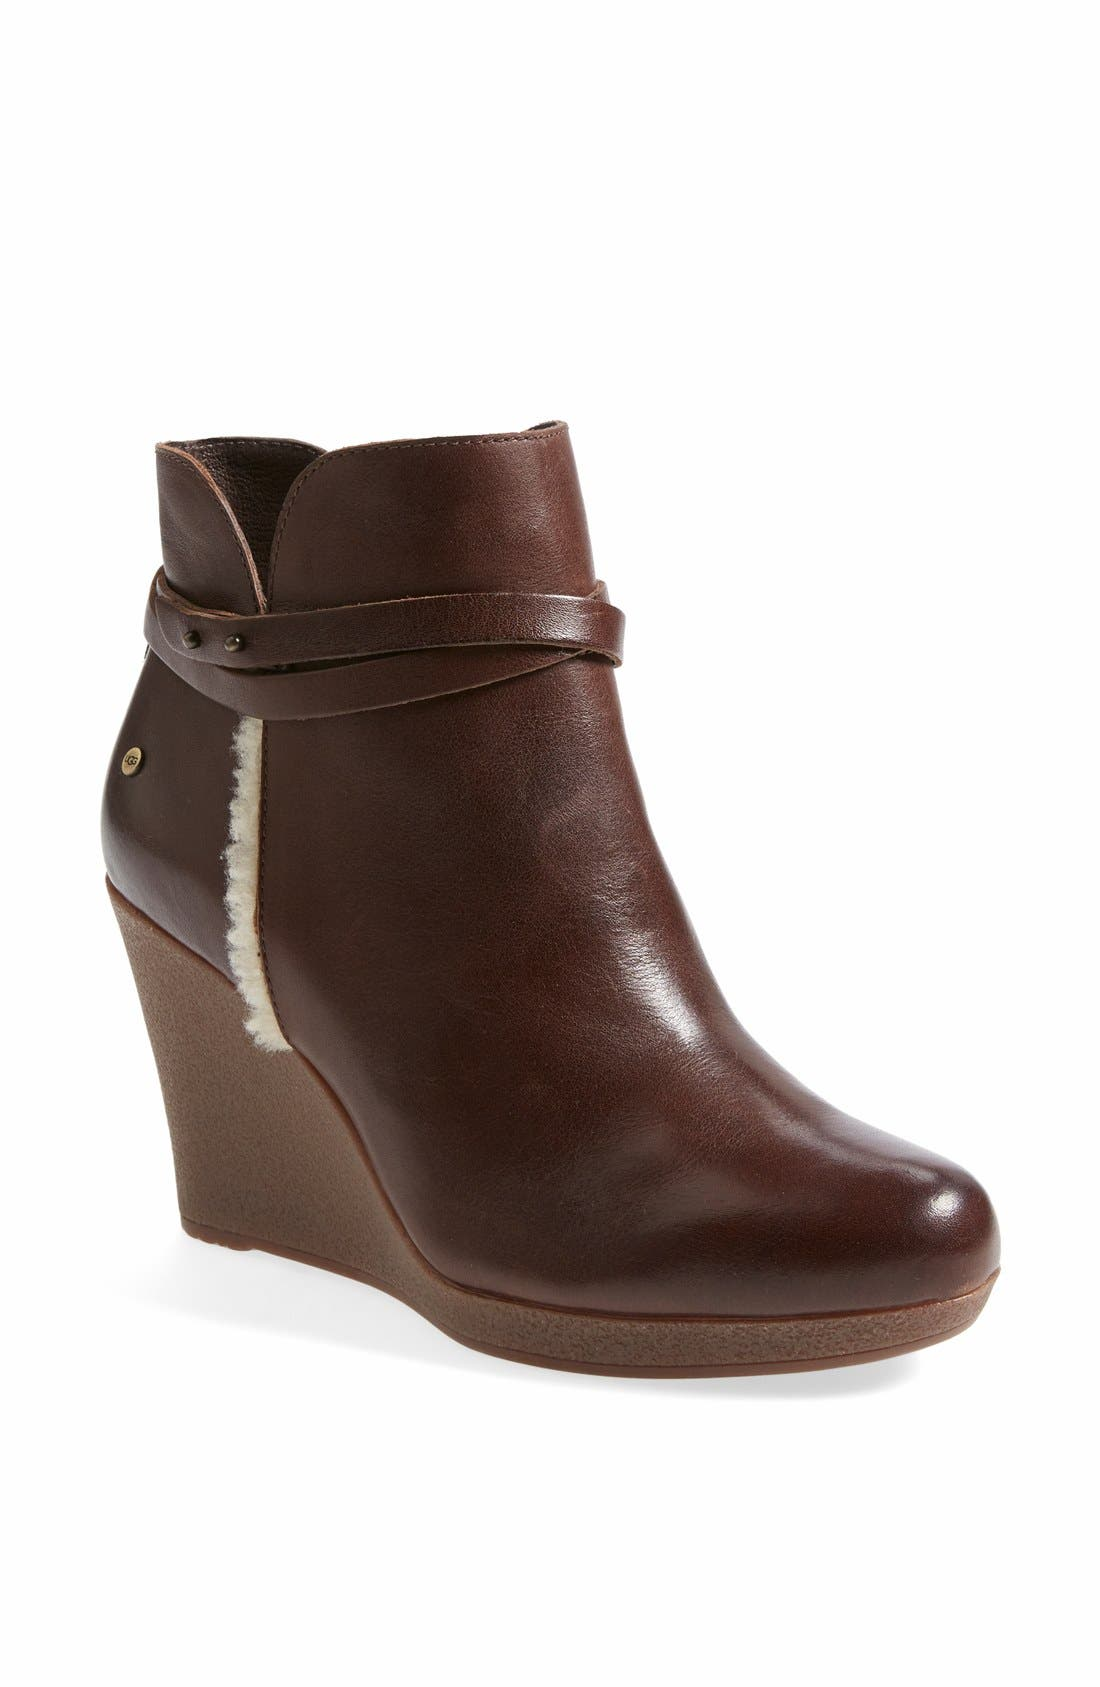 Alternate Image 1 Selected - UGG® Australia 'Alexandra' Water Resistant Wedge Bootie (Women)